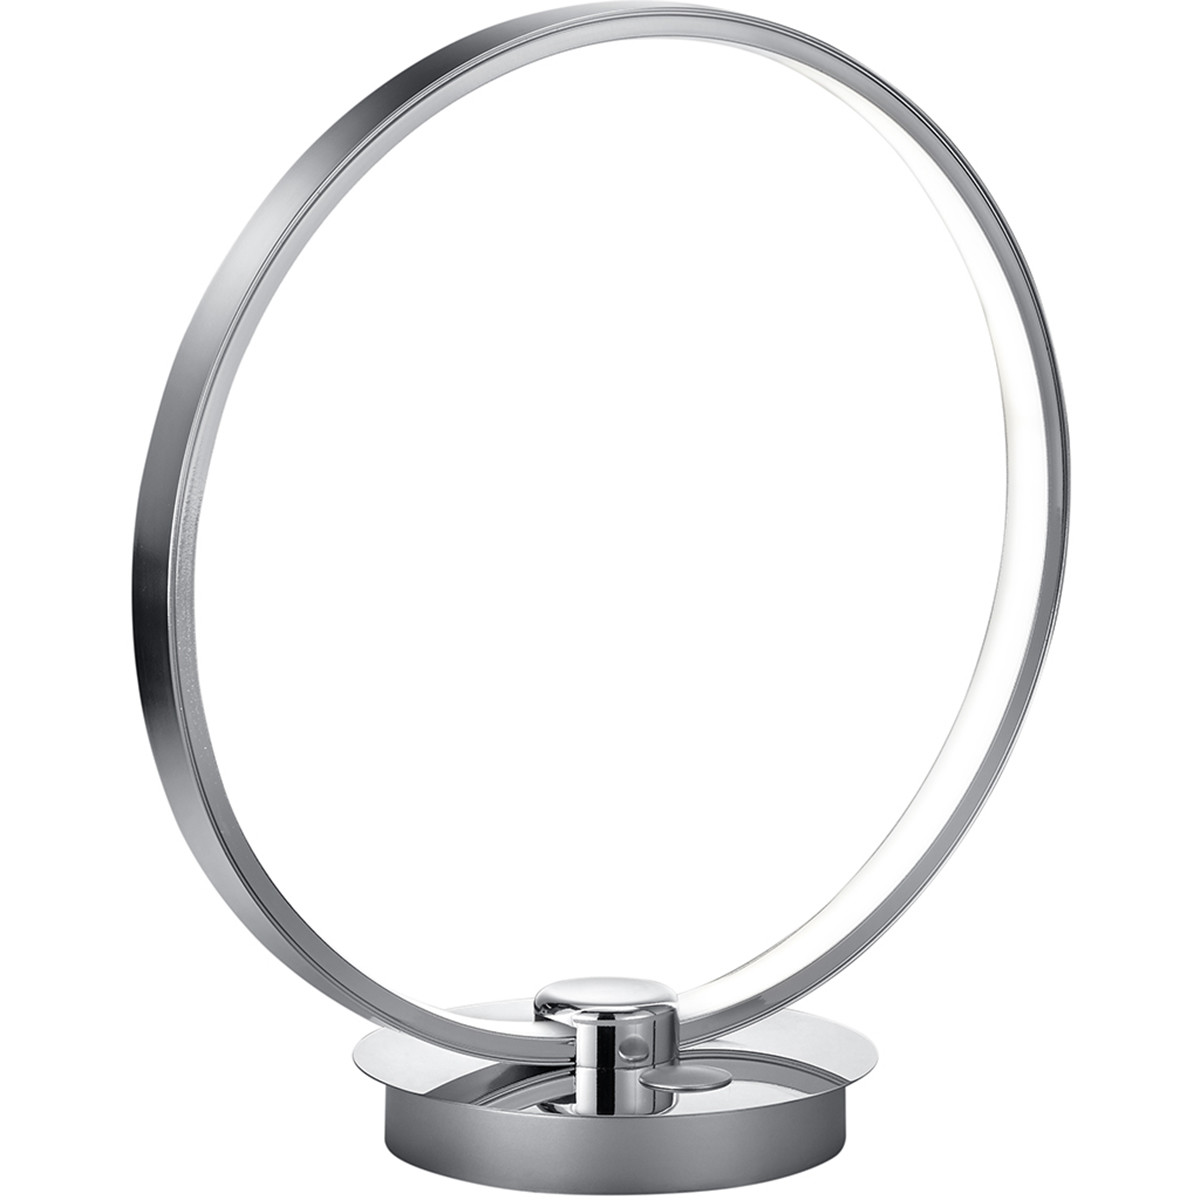 LED Tafellamp - Trion Danilo - 12W - Warm Wit 3000K - Dimbaar - Rond - Mat Chroom - Aluminium